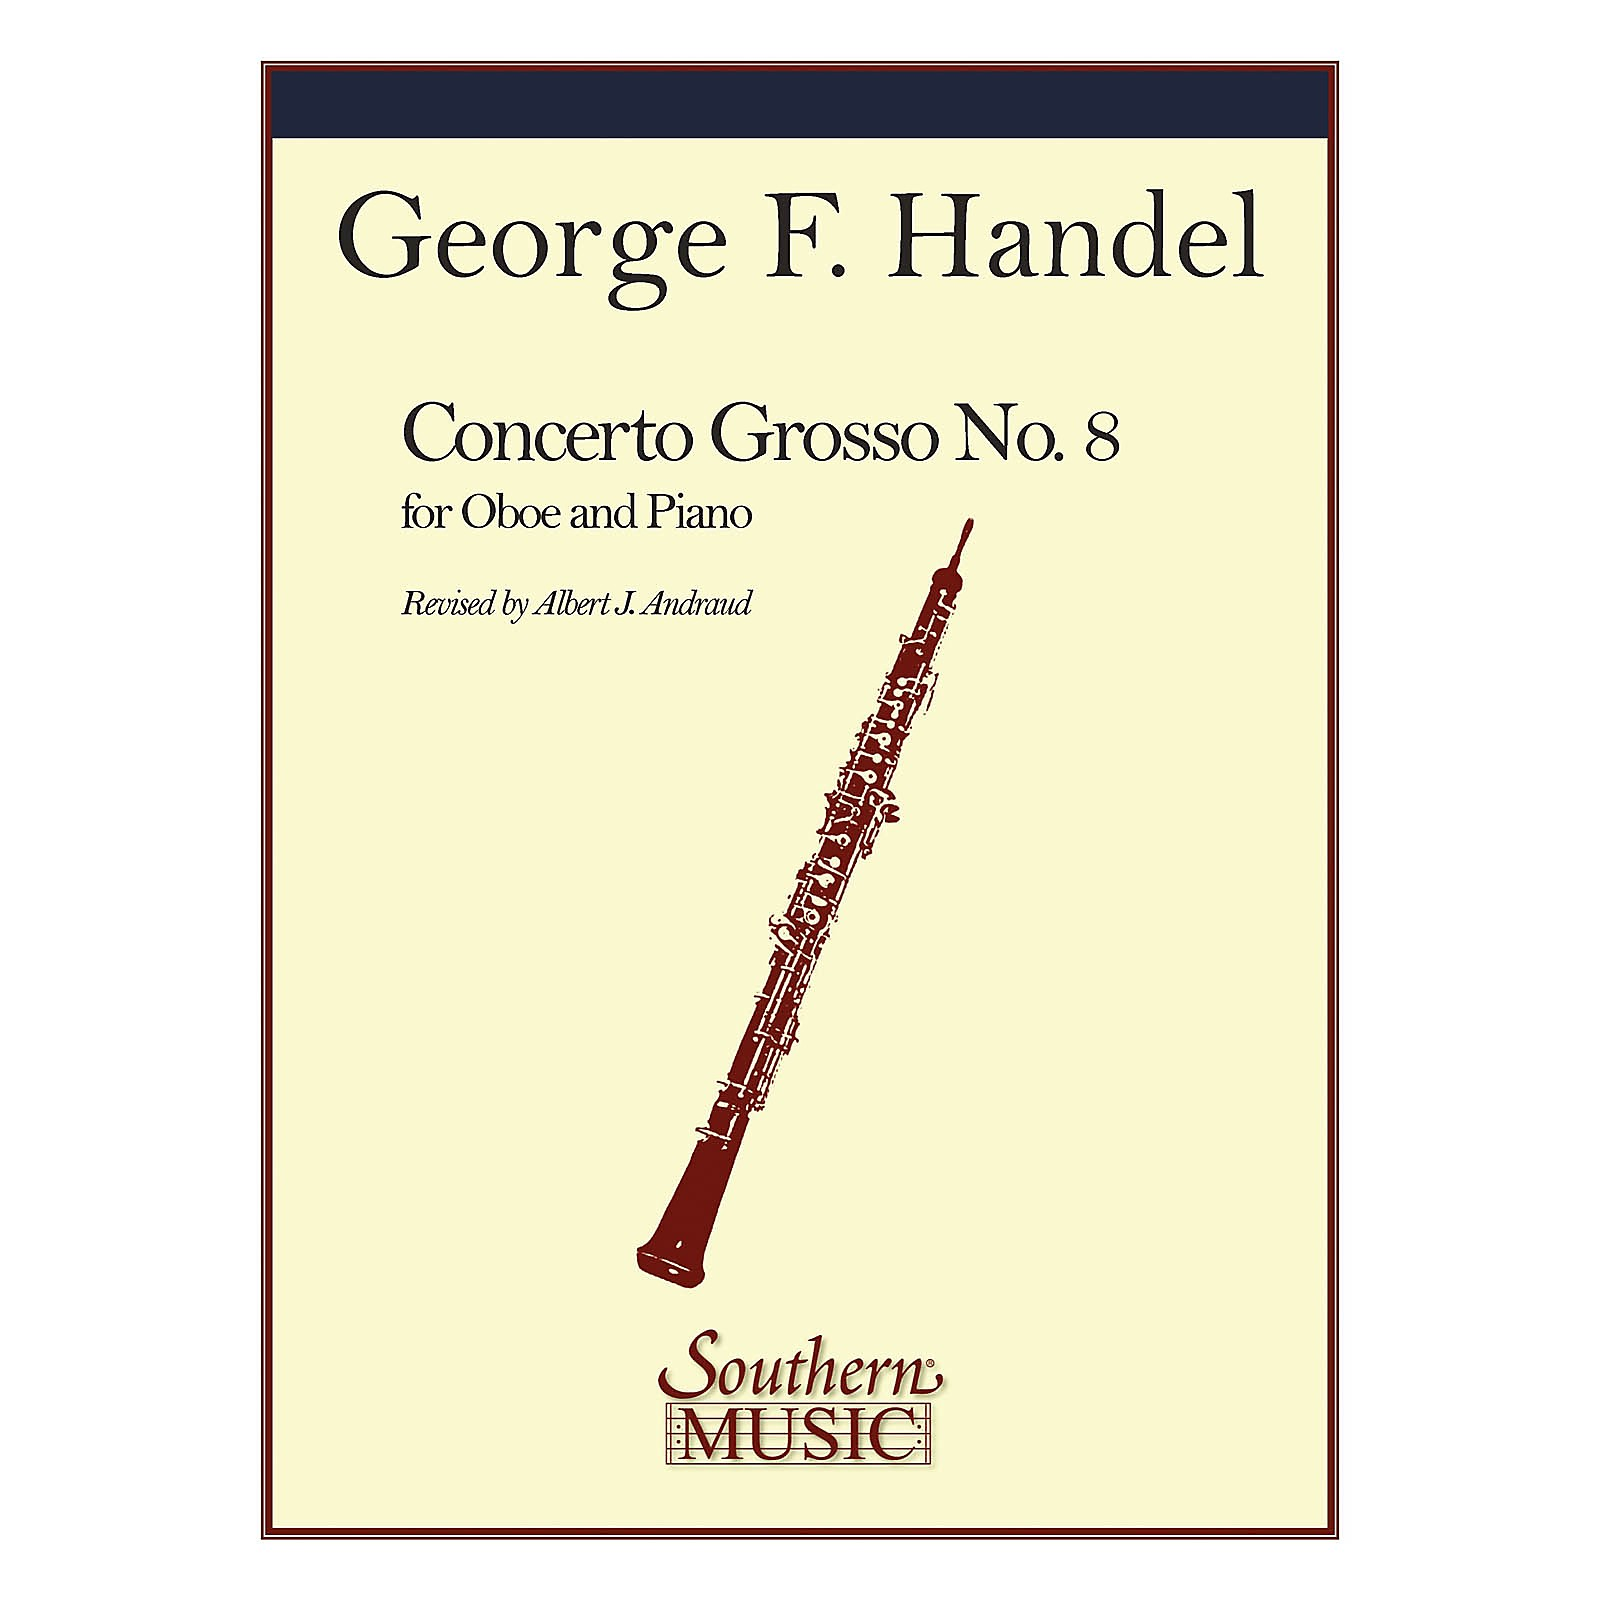 Southern Conc Grosso No 8 in B-Flat Southern Music by George Frideric Handel Arranged by Albert Andraud